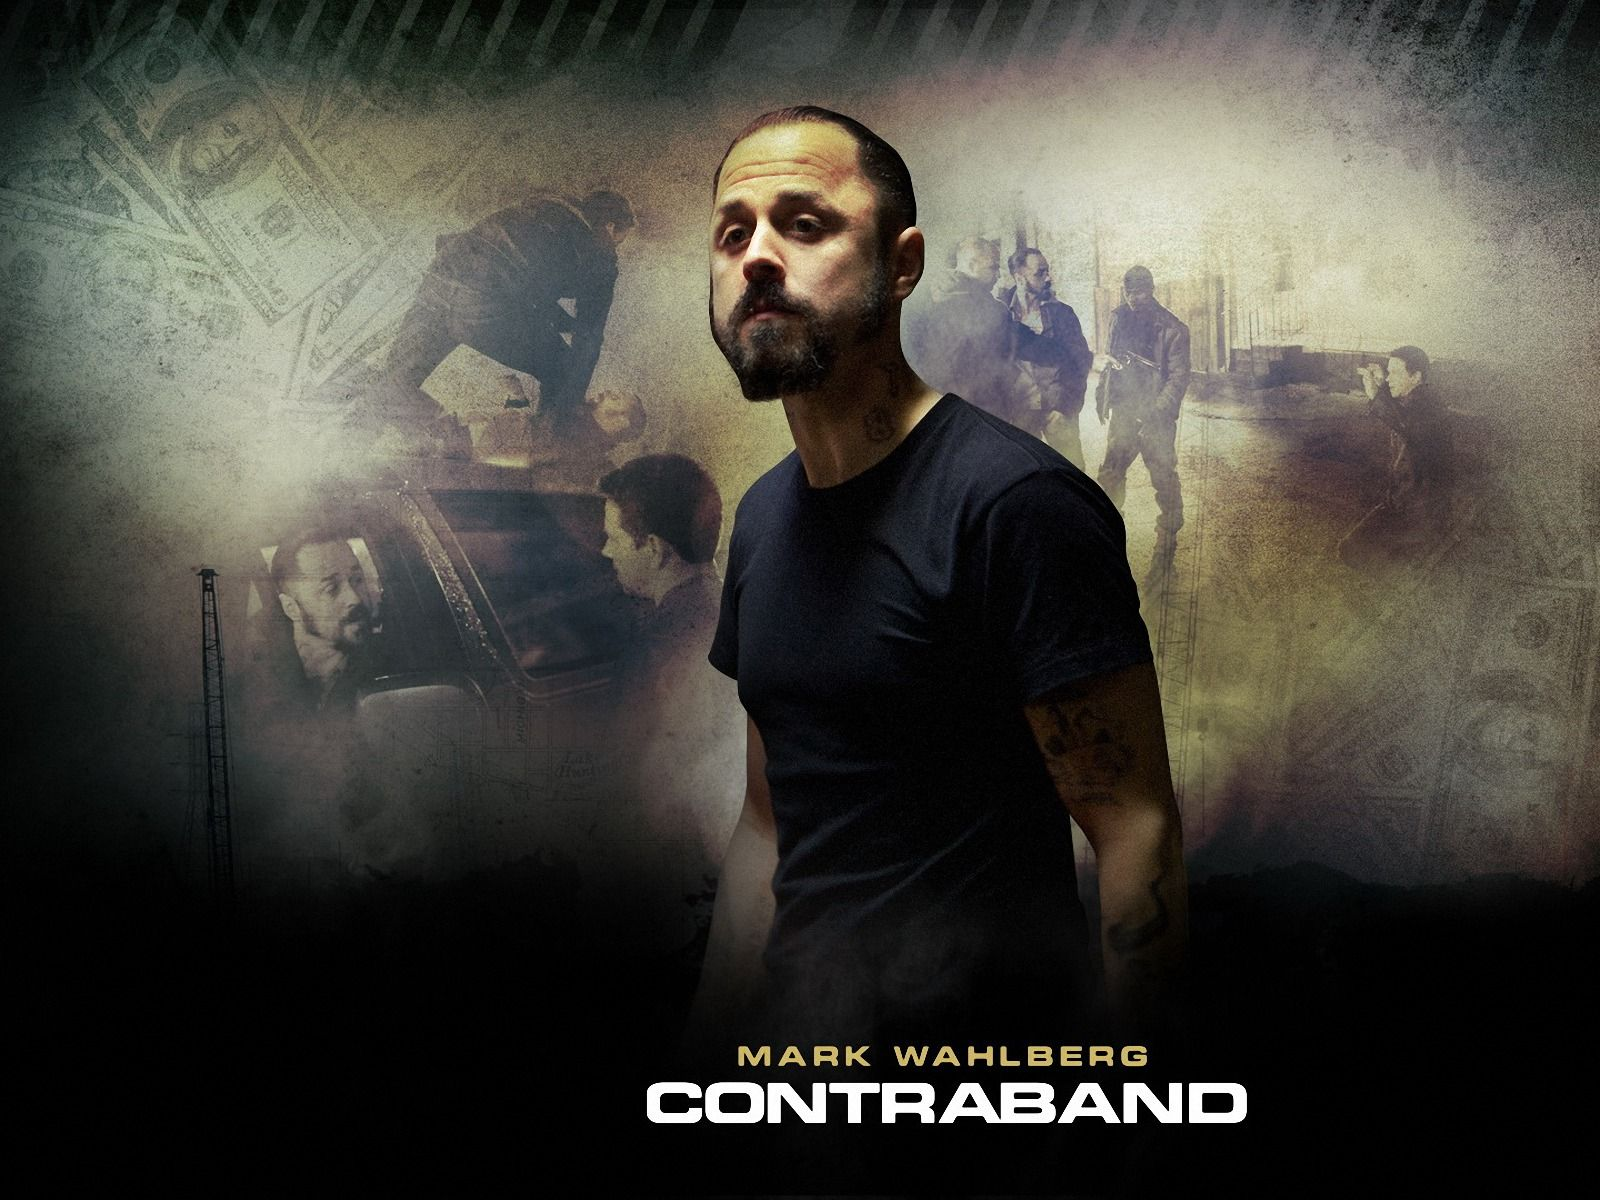 Contraband Giovanni Ribisi Wallpapers - http://wallfic.com/contraband-giovanni-ribisi-wallpapers/?Pinterest